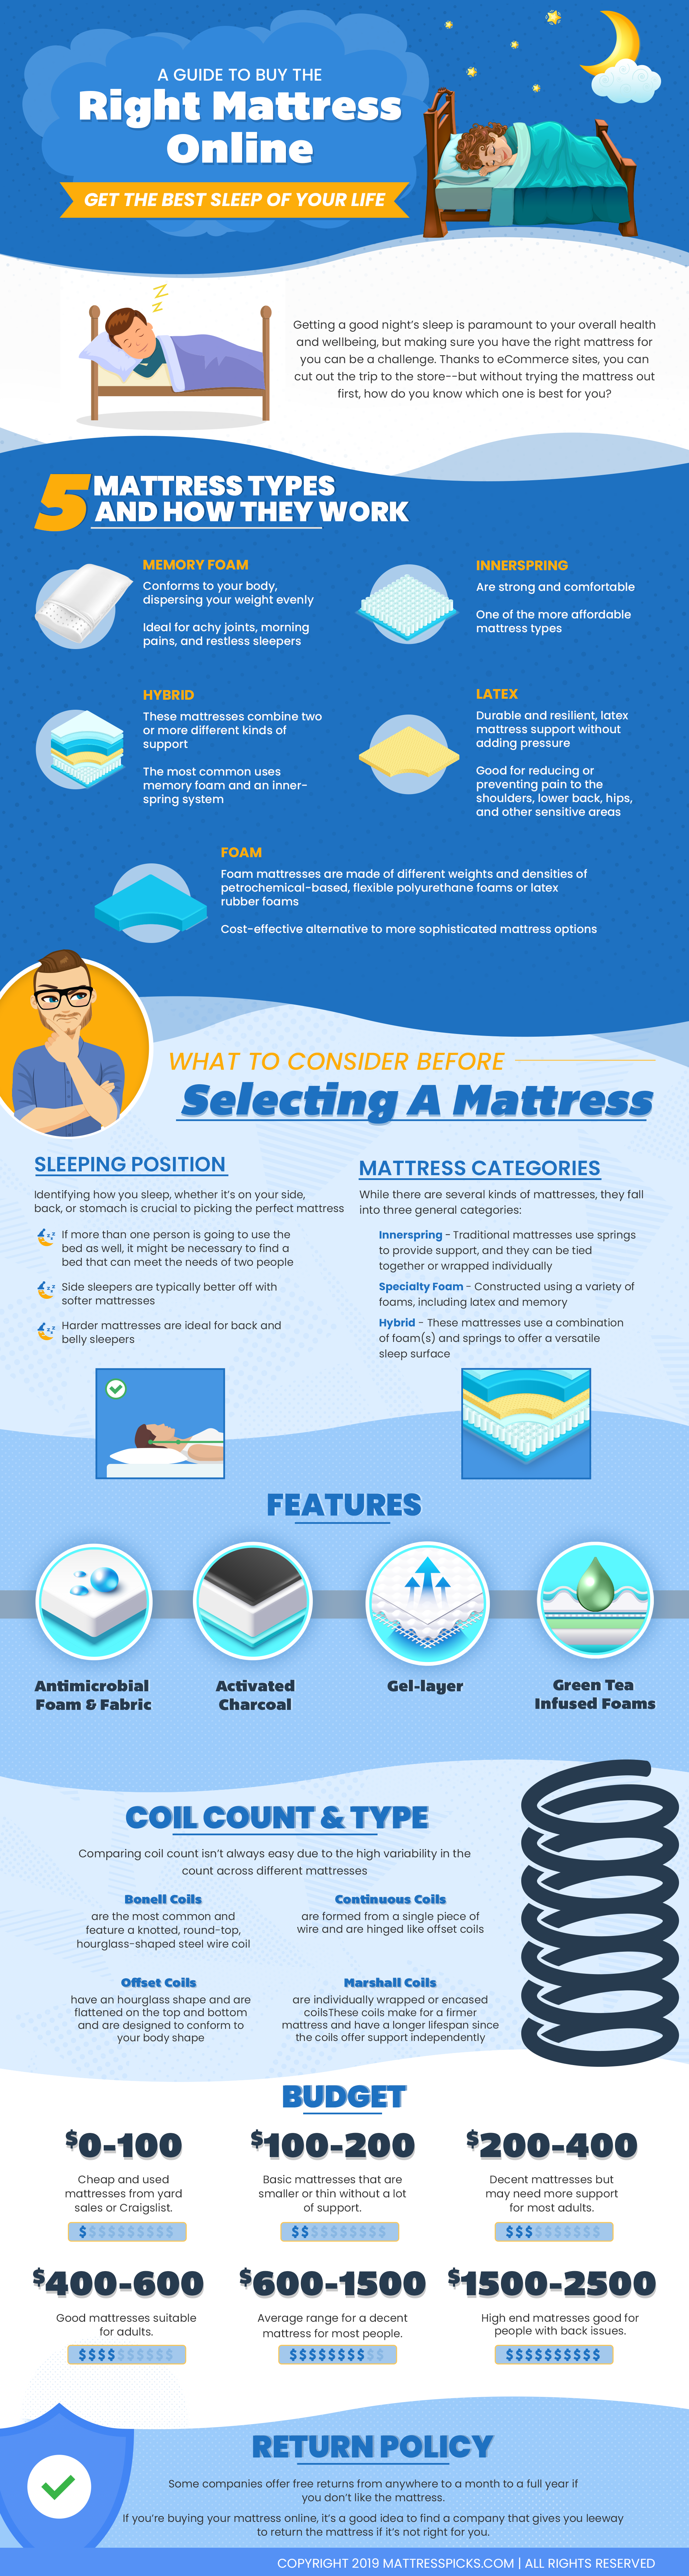 Ultimate Guide to Buy the Right Mattress Online Infographic